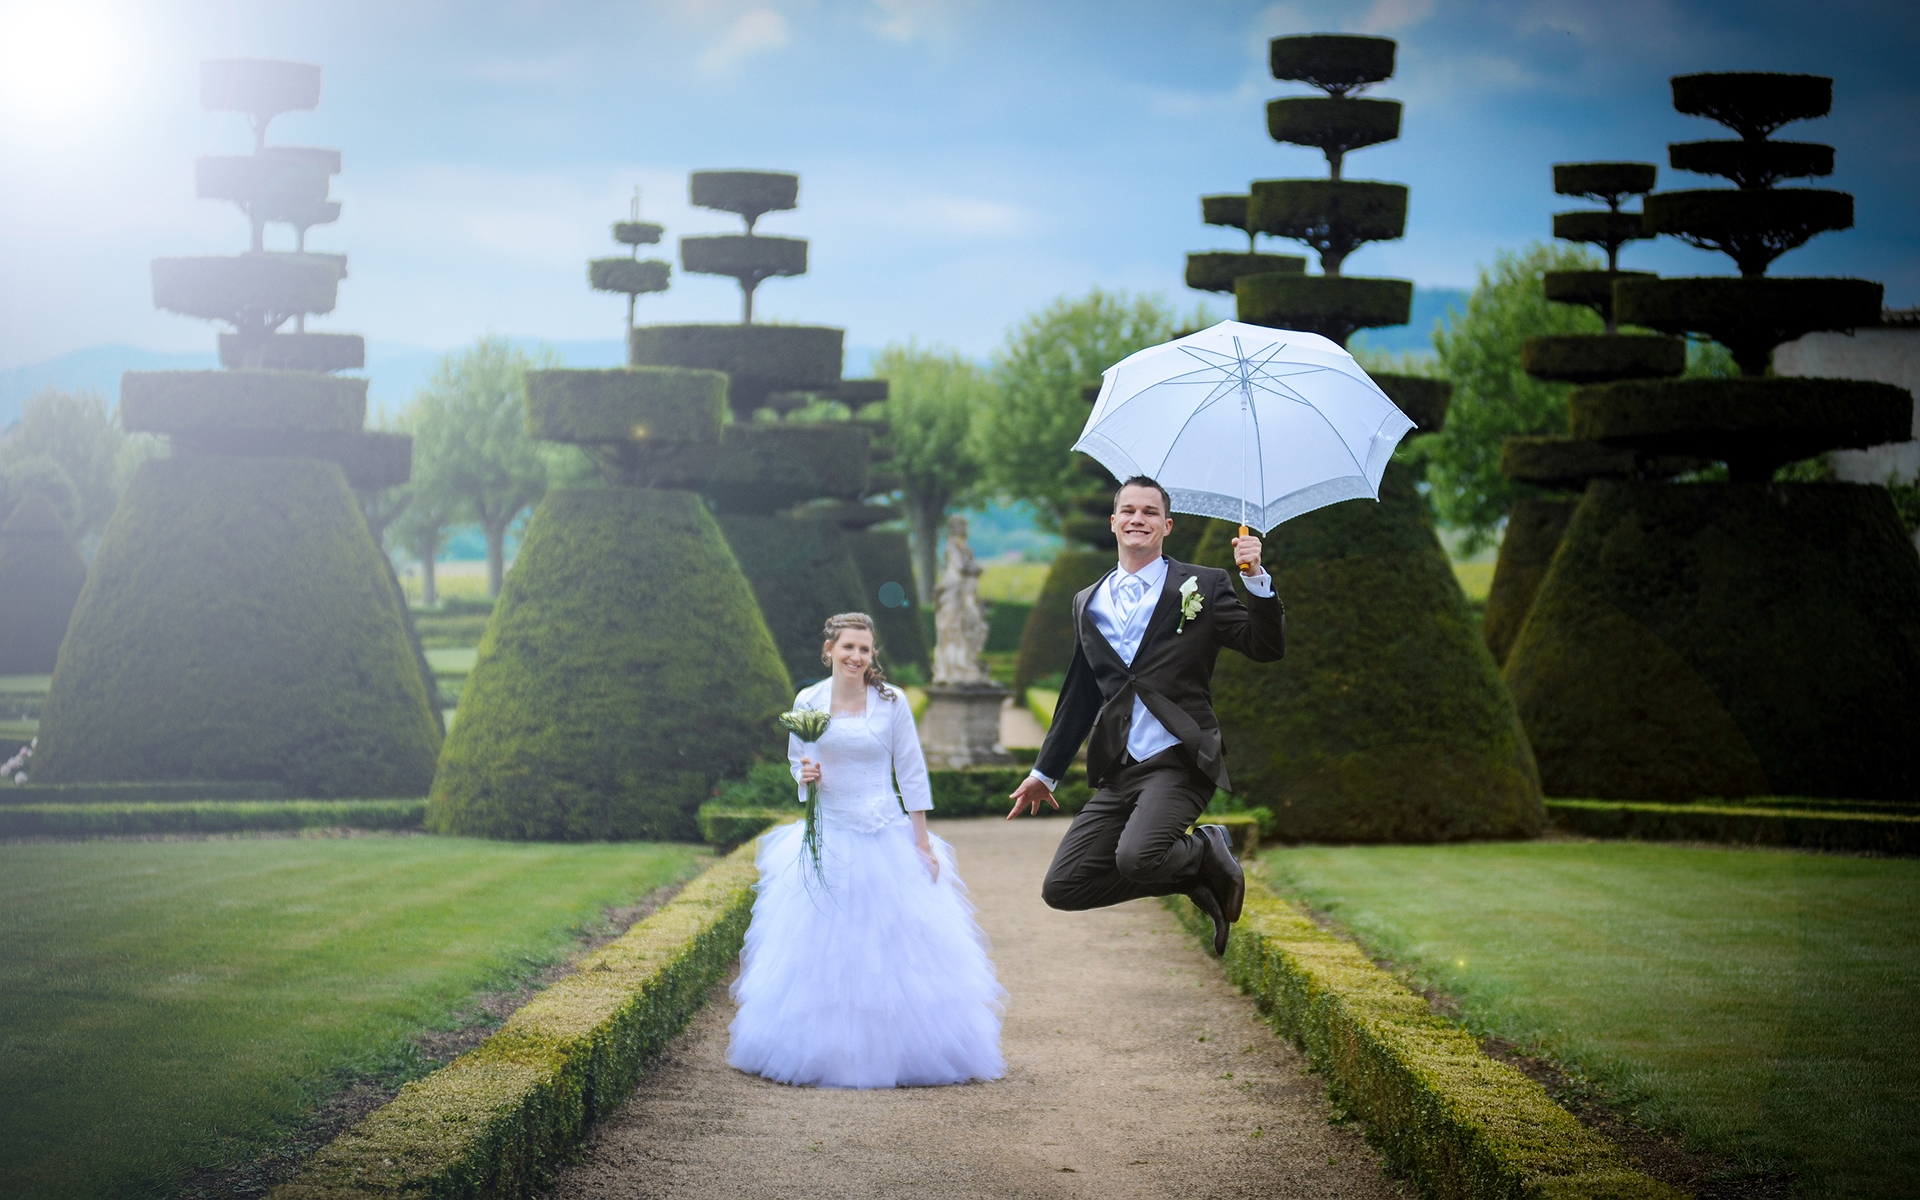 PHOTOGRAPHE MARIAGE AIN 01 - PHOTYS 001 (Sides 1-2)